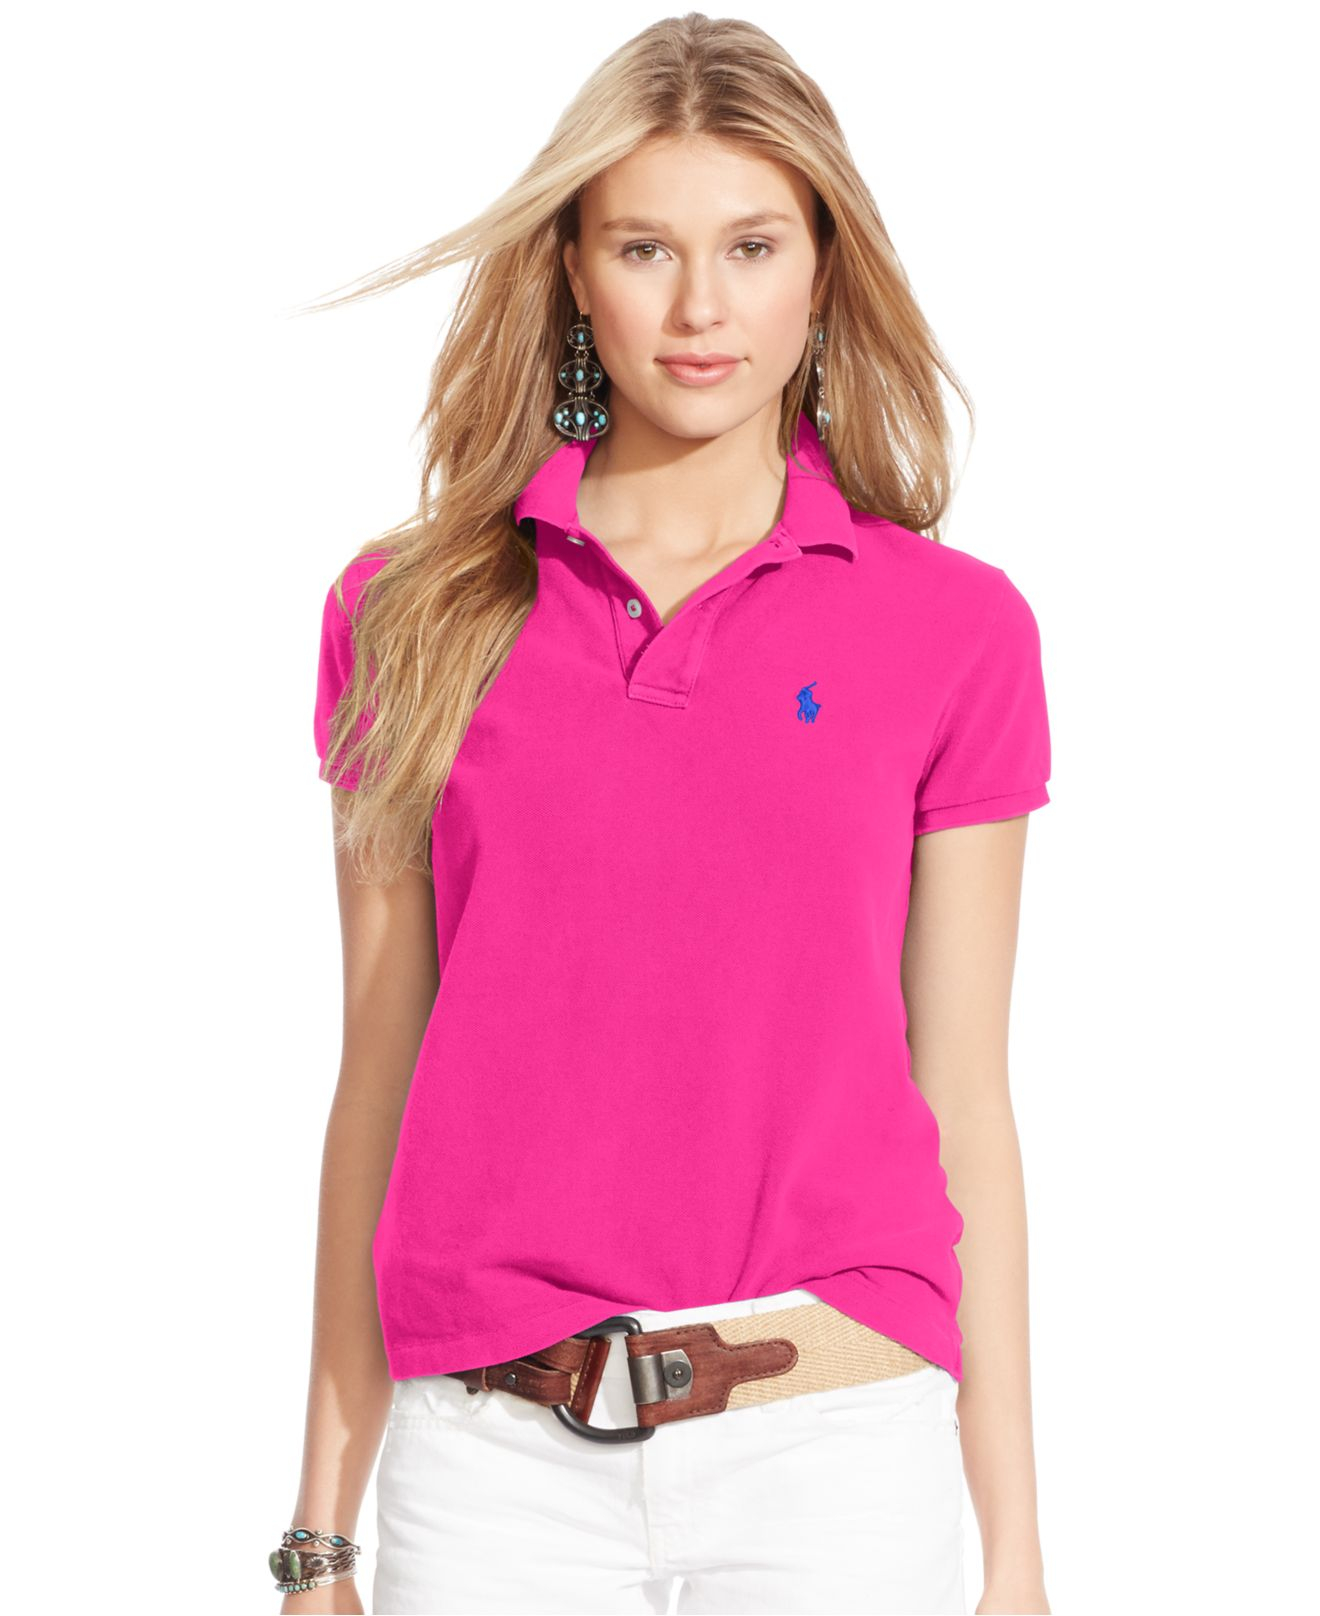 Lyst - Polo Ralph Lauren Classic-Fit Polo Shirt in Pink 396d61925a